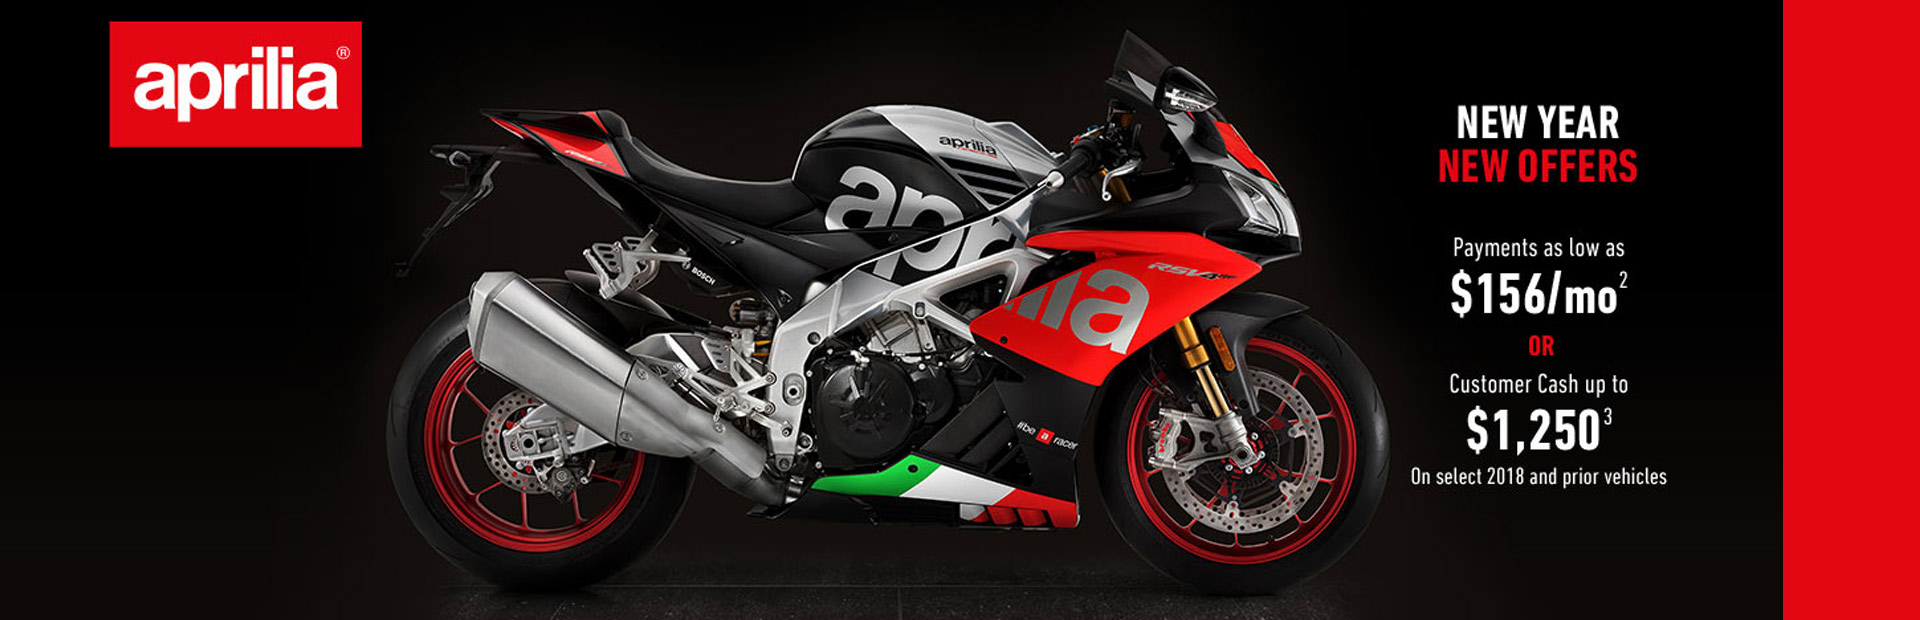 Aprilia: New Season Specials From Aprilia